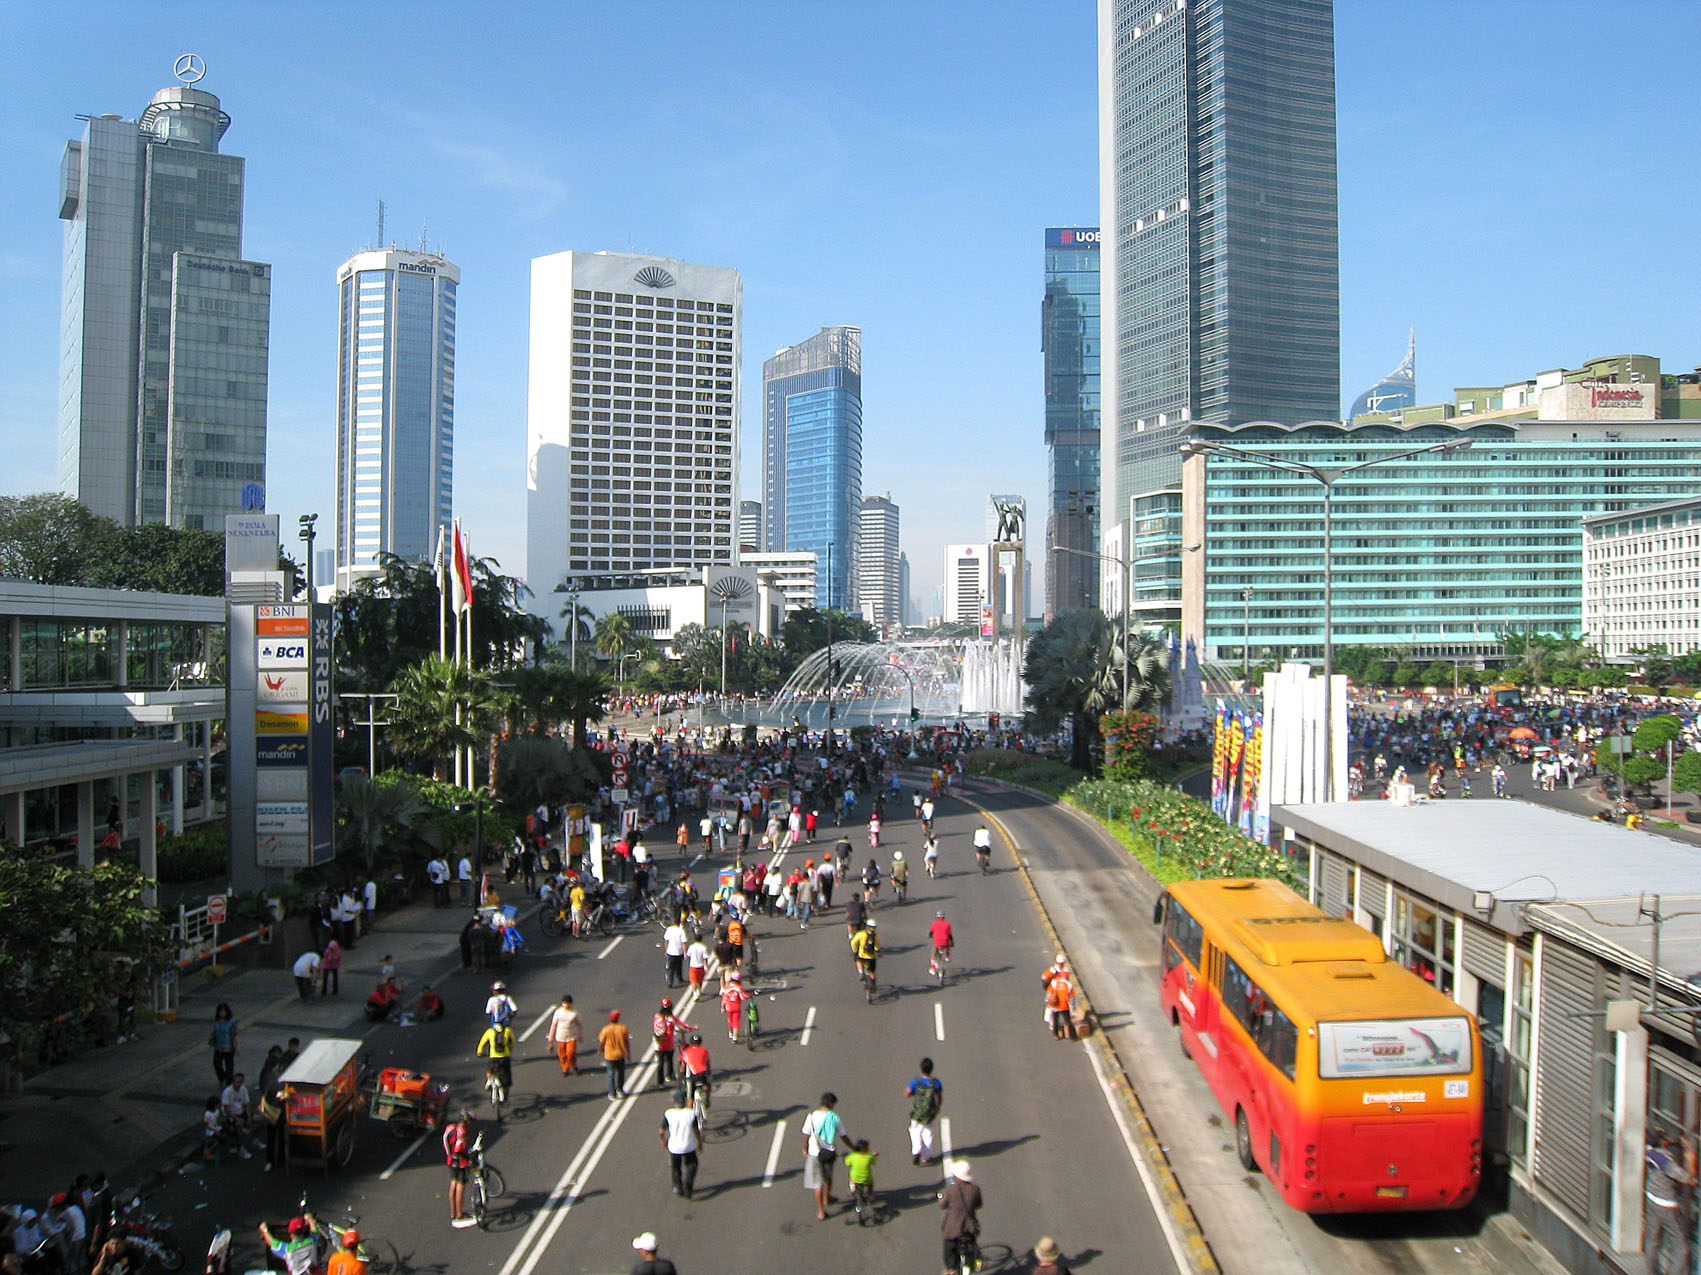 People on street with skyscrapers in the distance; Jakarta, Indonesia